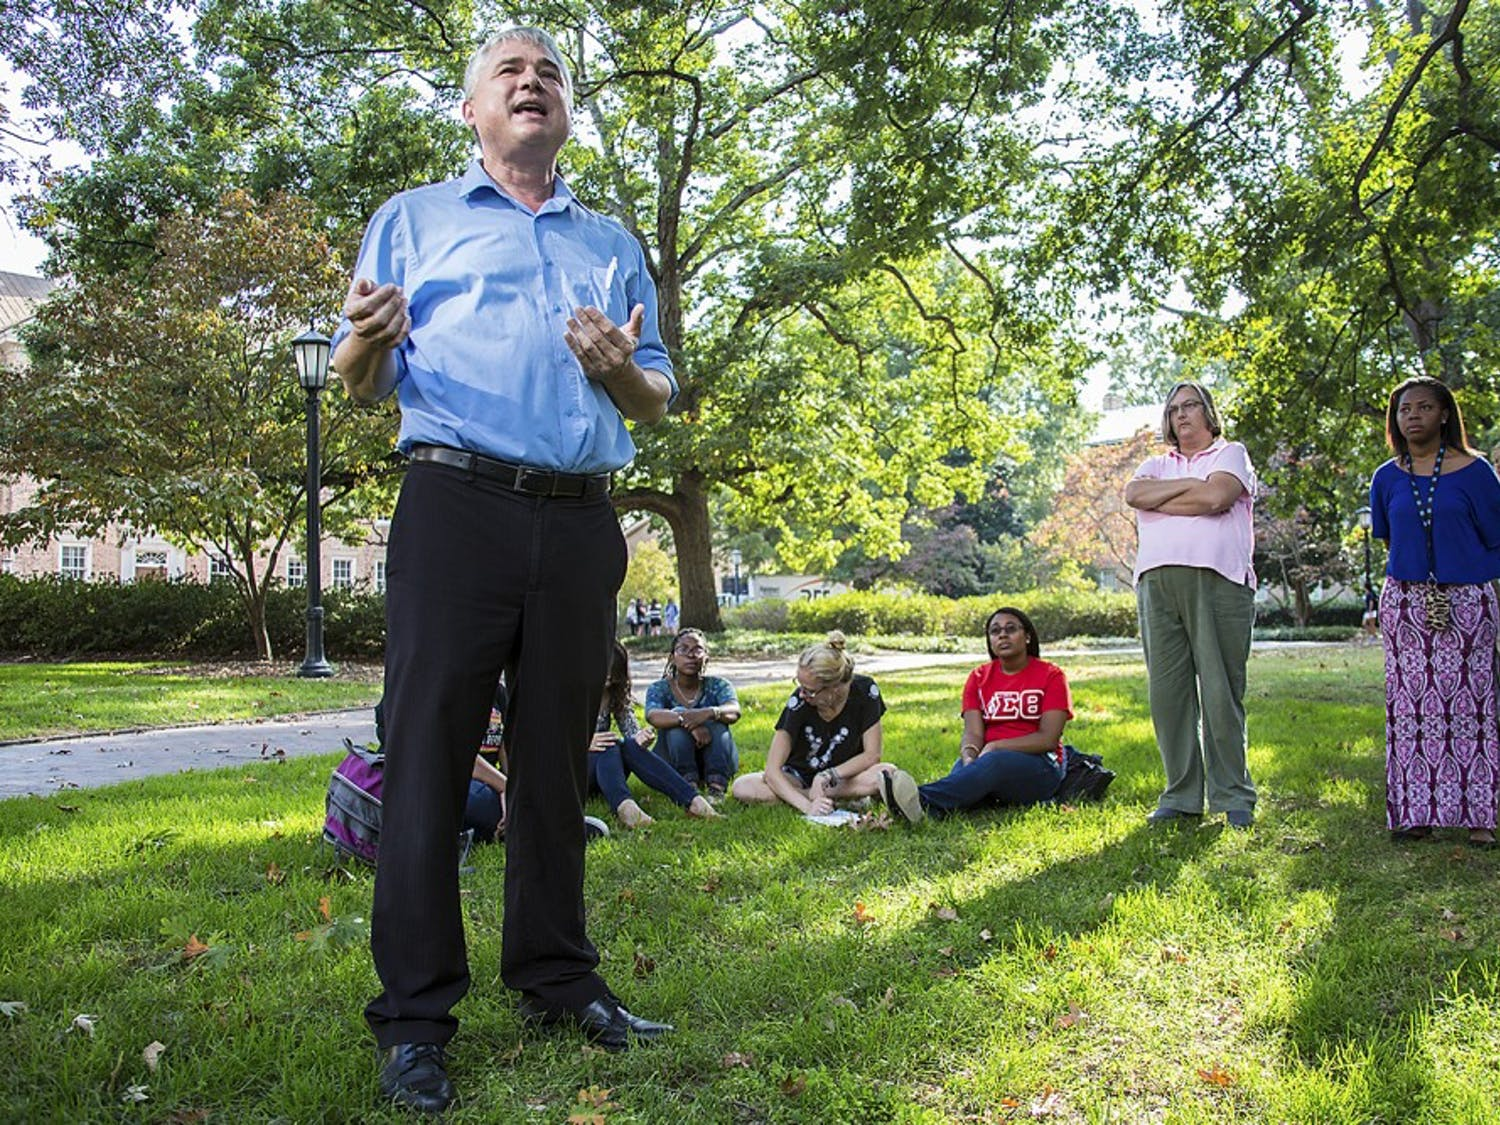 Tim McMillan, senior lecturer in UNC's Department of African, African-American and Diaspora Studies, talks to students and local residents on the Black and Blue Tour about historical landmarks on campus related to UNC's racial history.